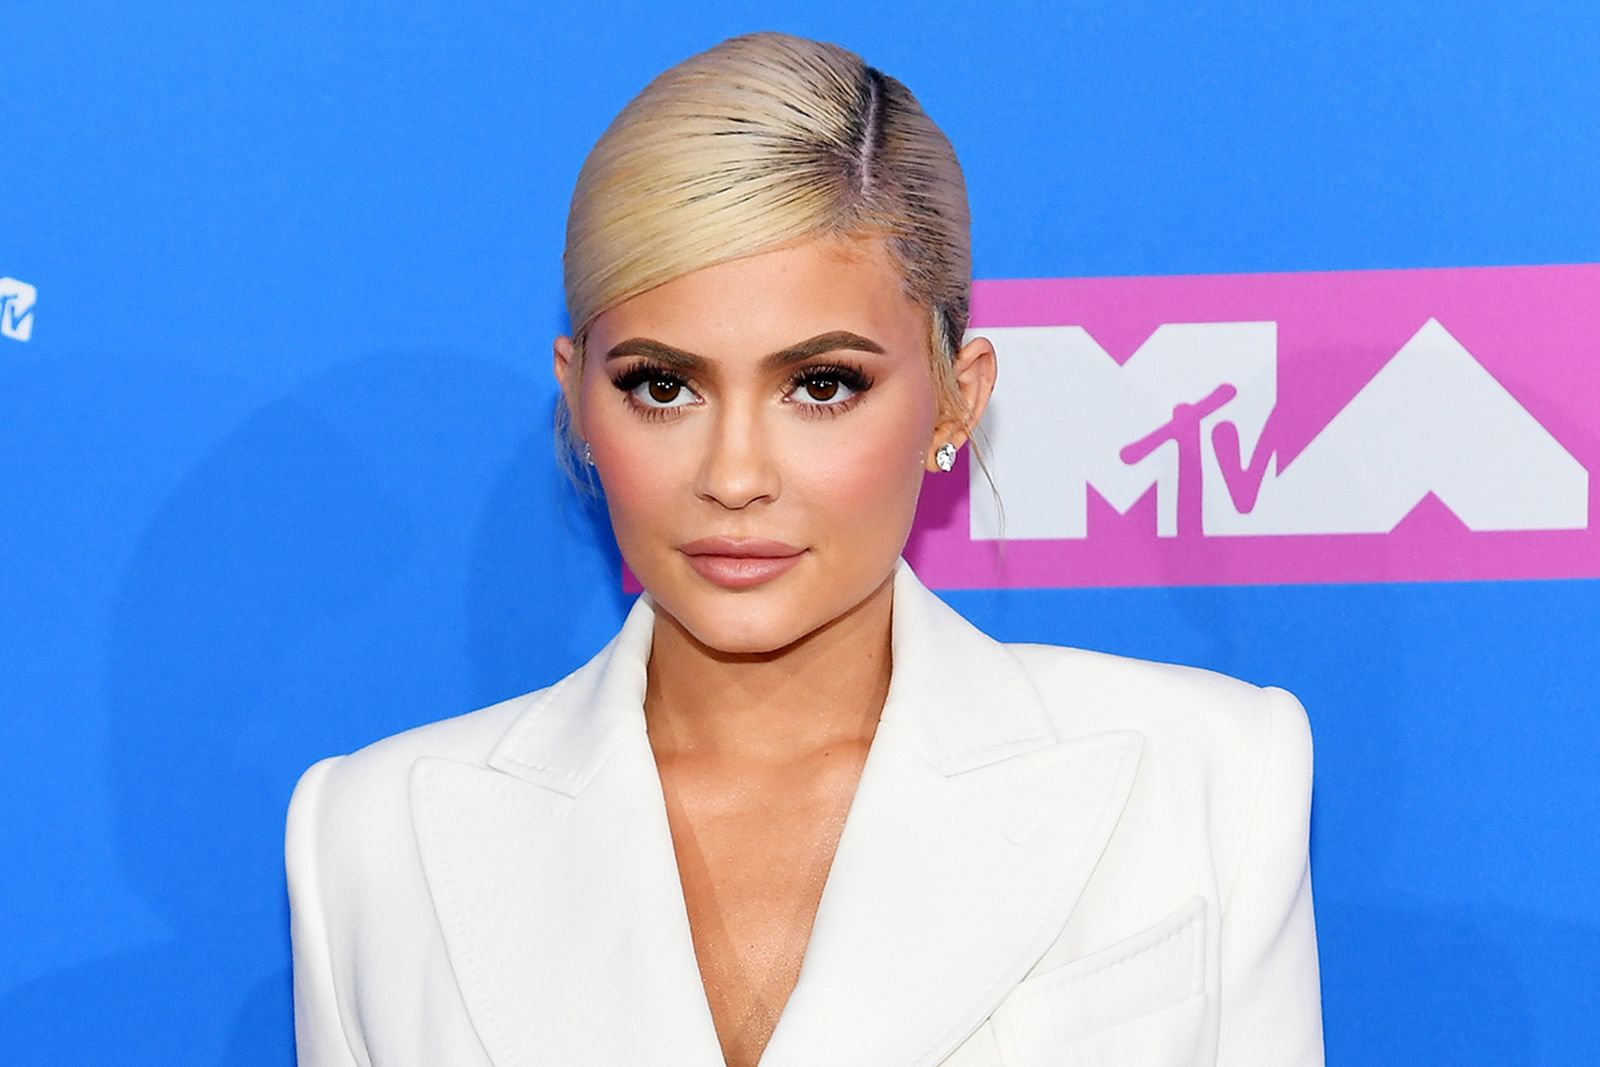 kylie jenner forbes youngest billionaire